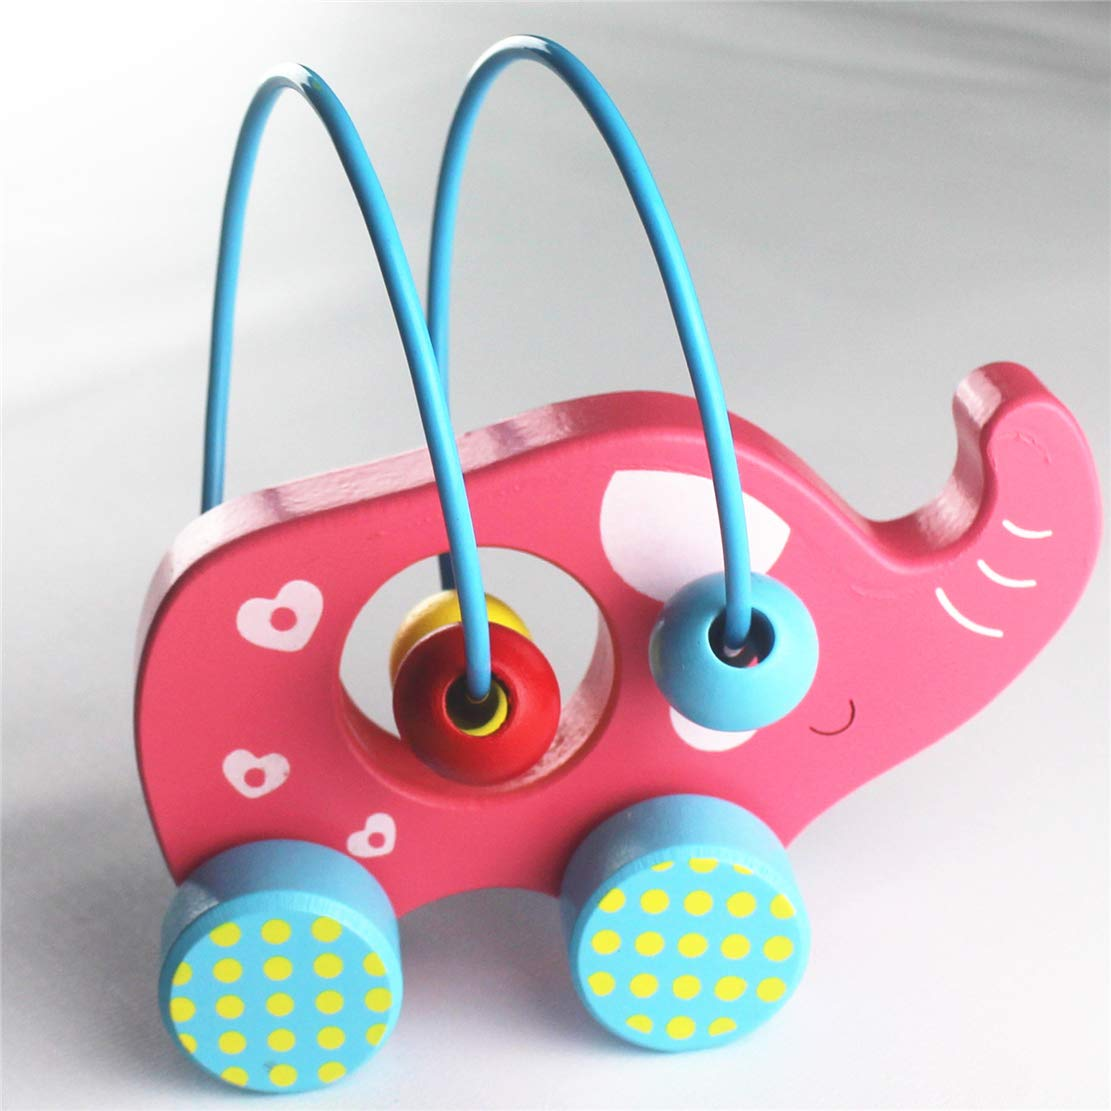 Muxihosn Adorable Pink Elephant Chunky Wooden Car Toddlers,Boys/&Girls,3 Year Old or up Animal Easy Push Toys with Simple Bead Maze,Educational Toy for Baby